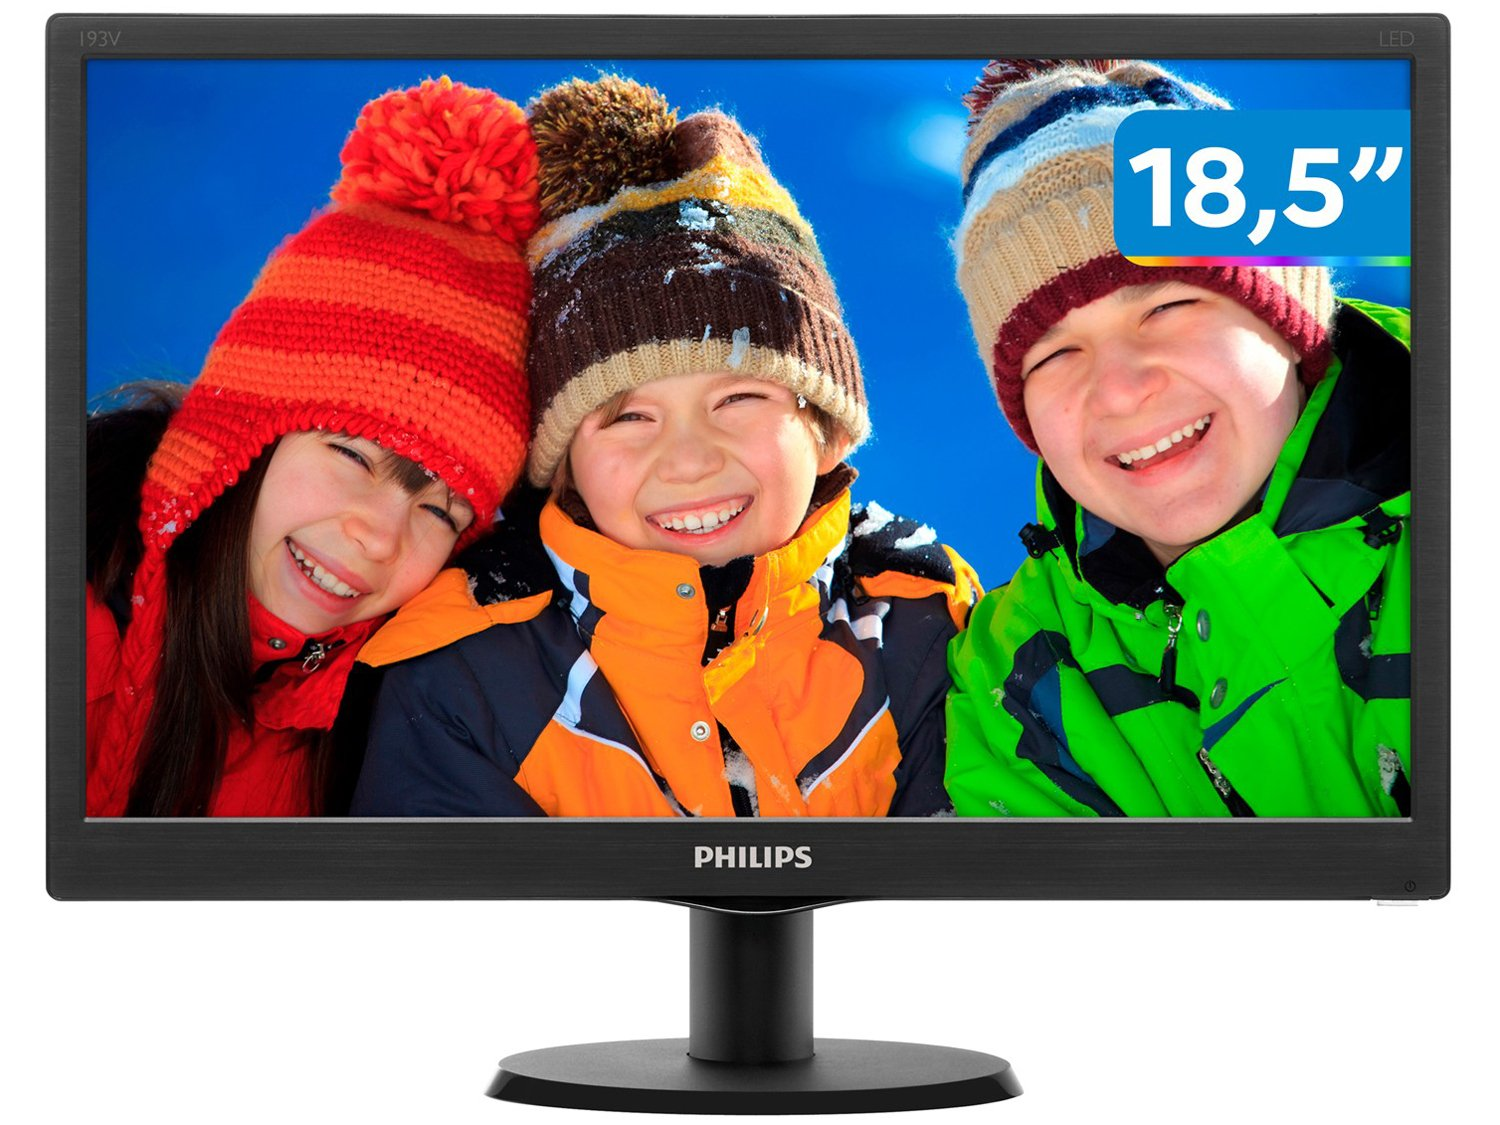 Foto 1 - Monitor para PC HD Philips LED Widescreen 18,5 - 193V5LSB2